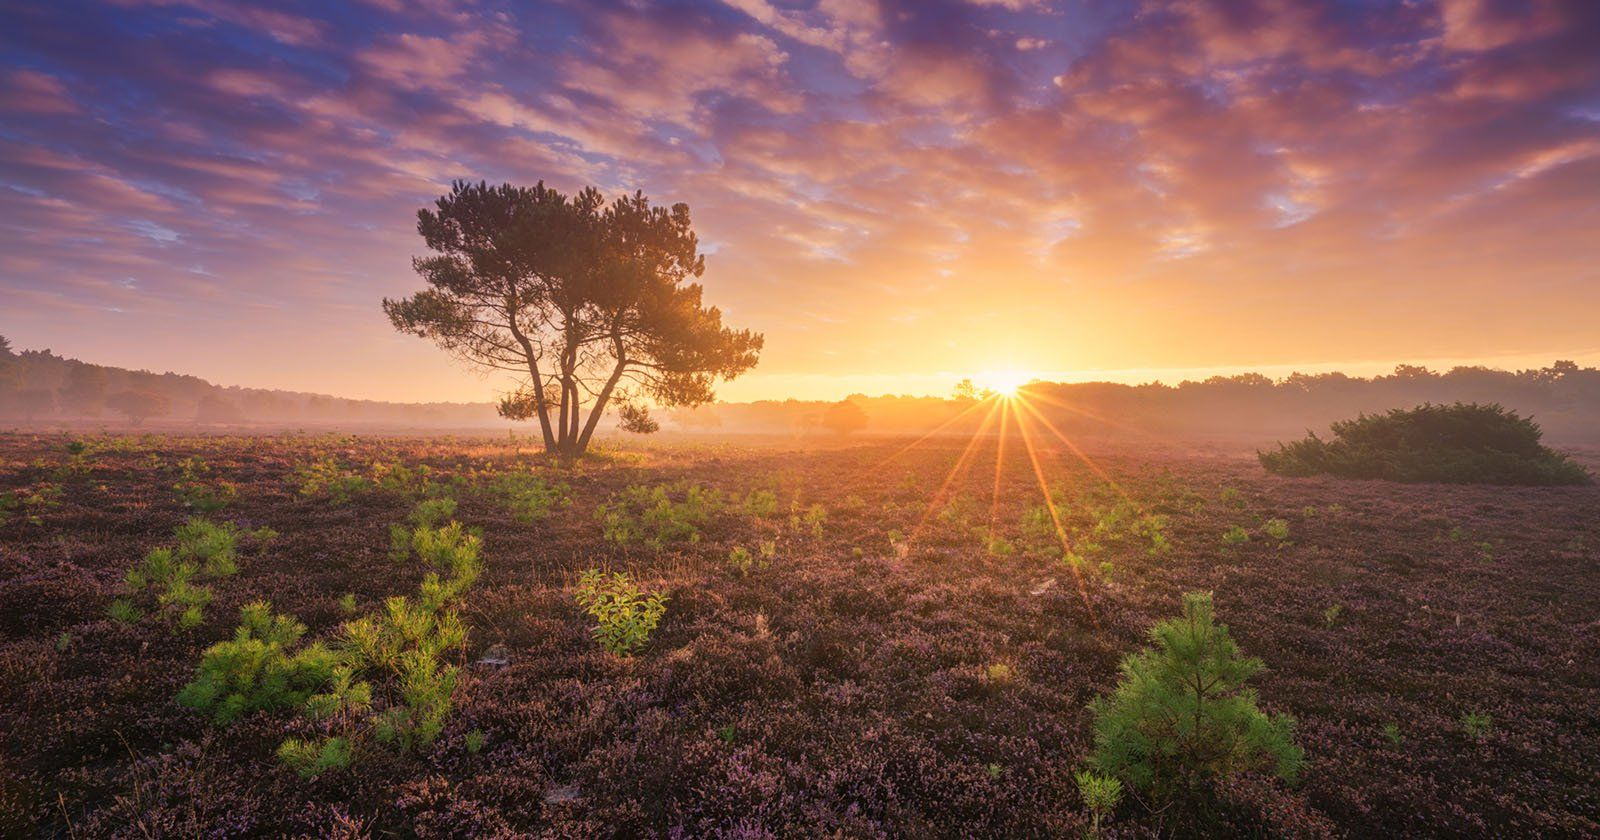 10 Tips To Take Your Landscape Photos To The Next Level Landscape Photos Landscape Photography Landscape Pictures